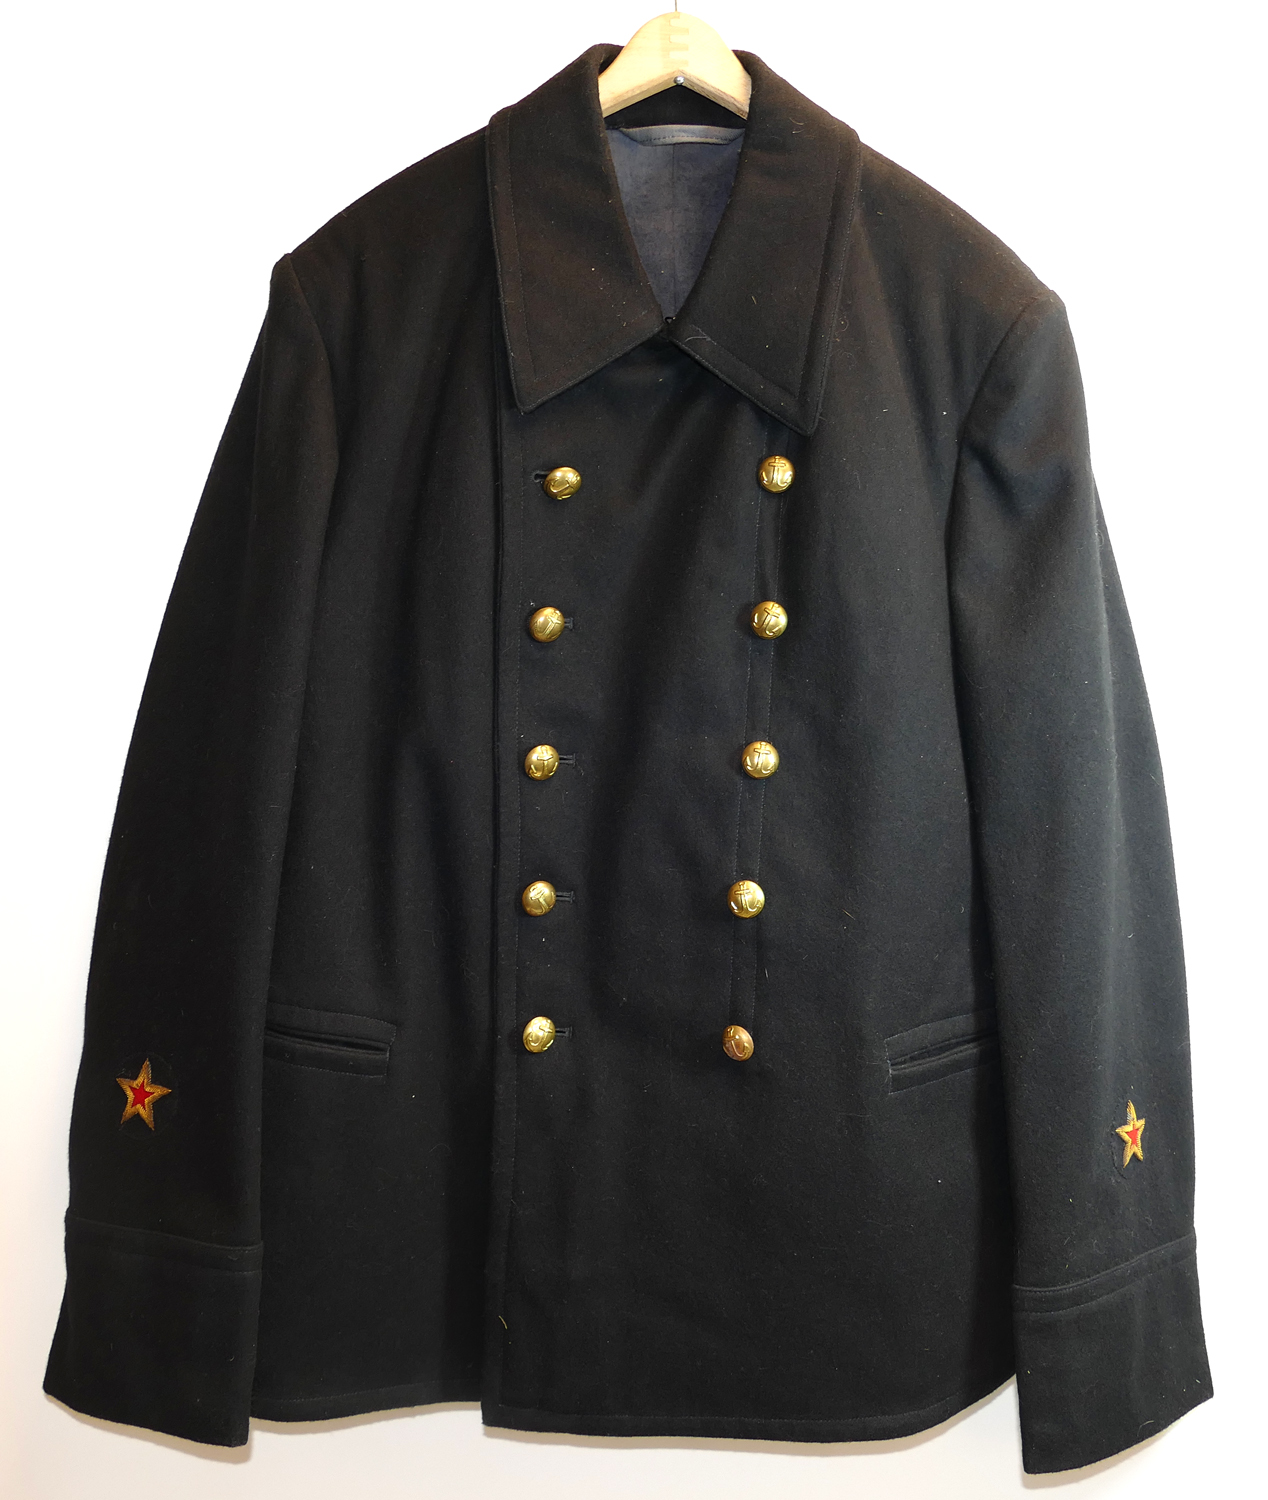 red_army_navy_commissar_wwii_uniform_jacket